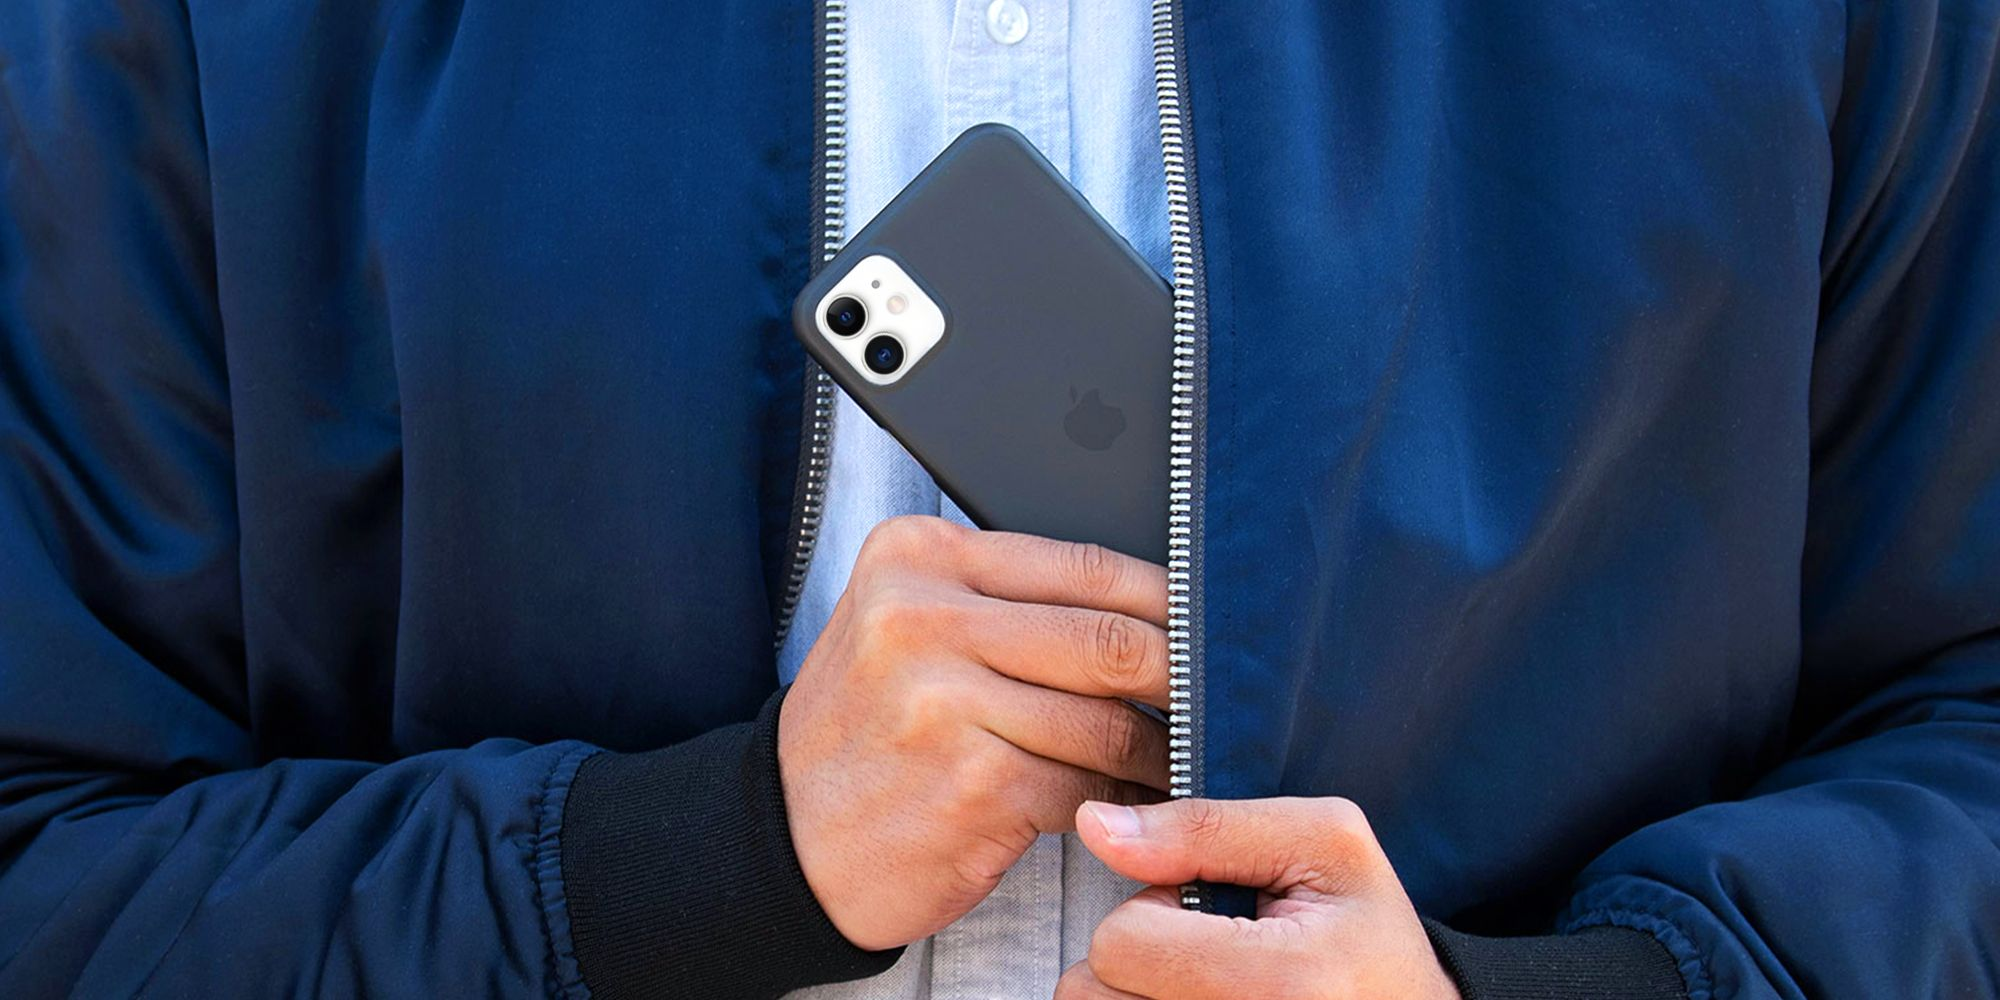 Your New iPhone 11 Deserves an Equally Awesome Protective Case